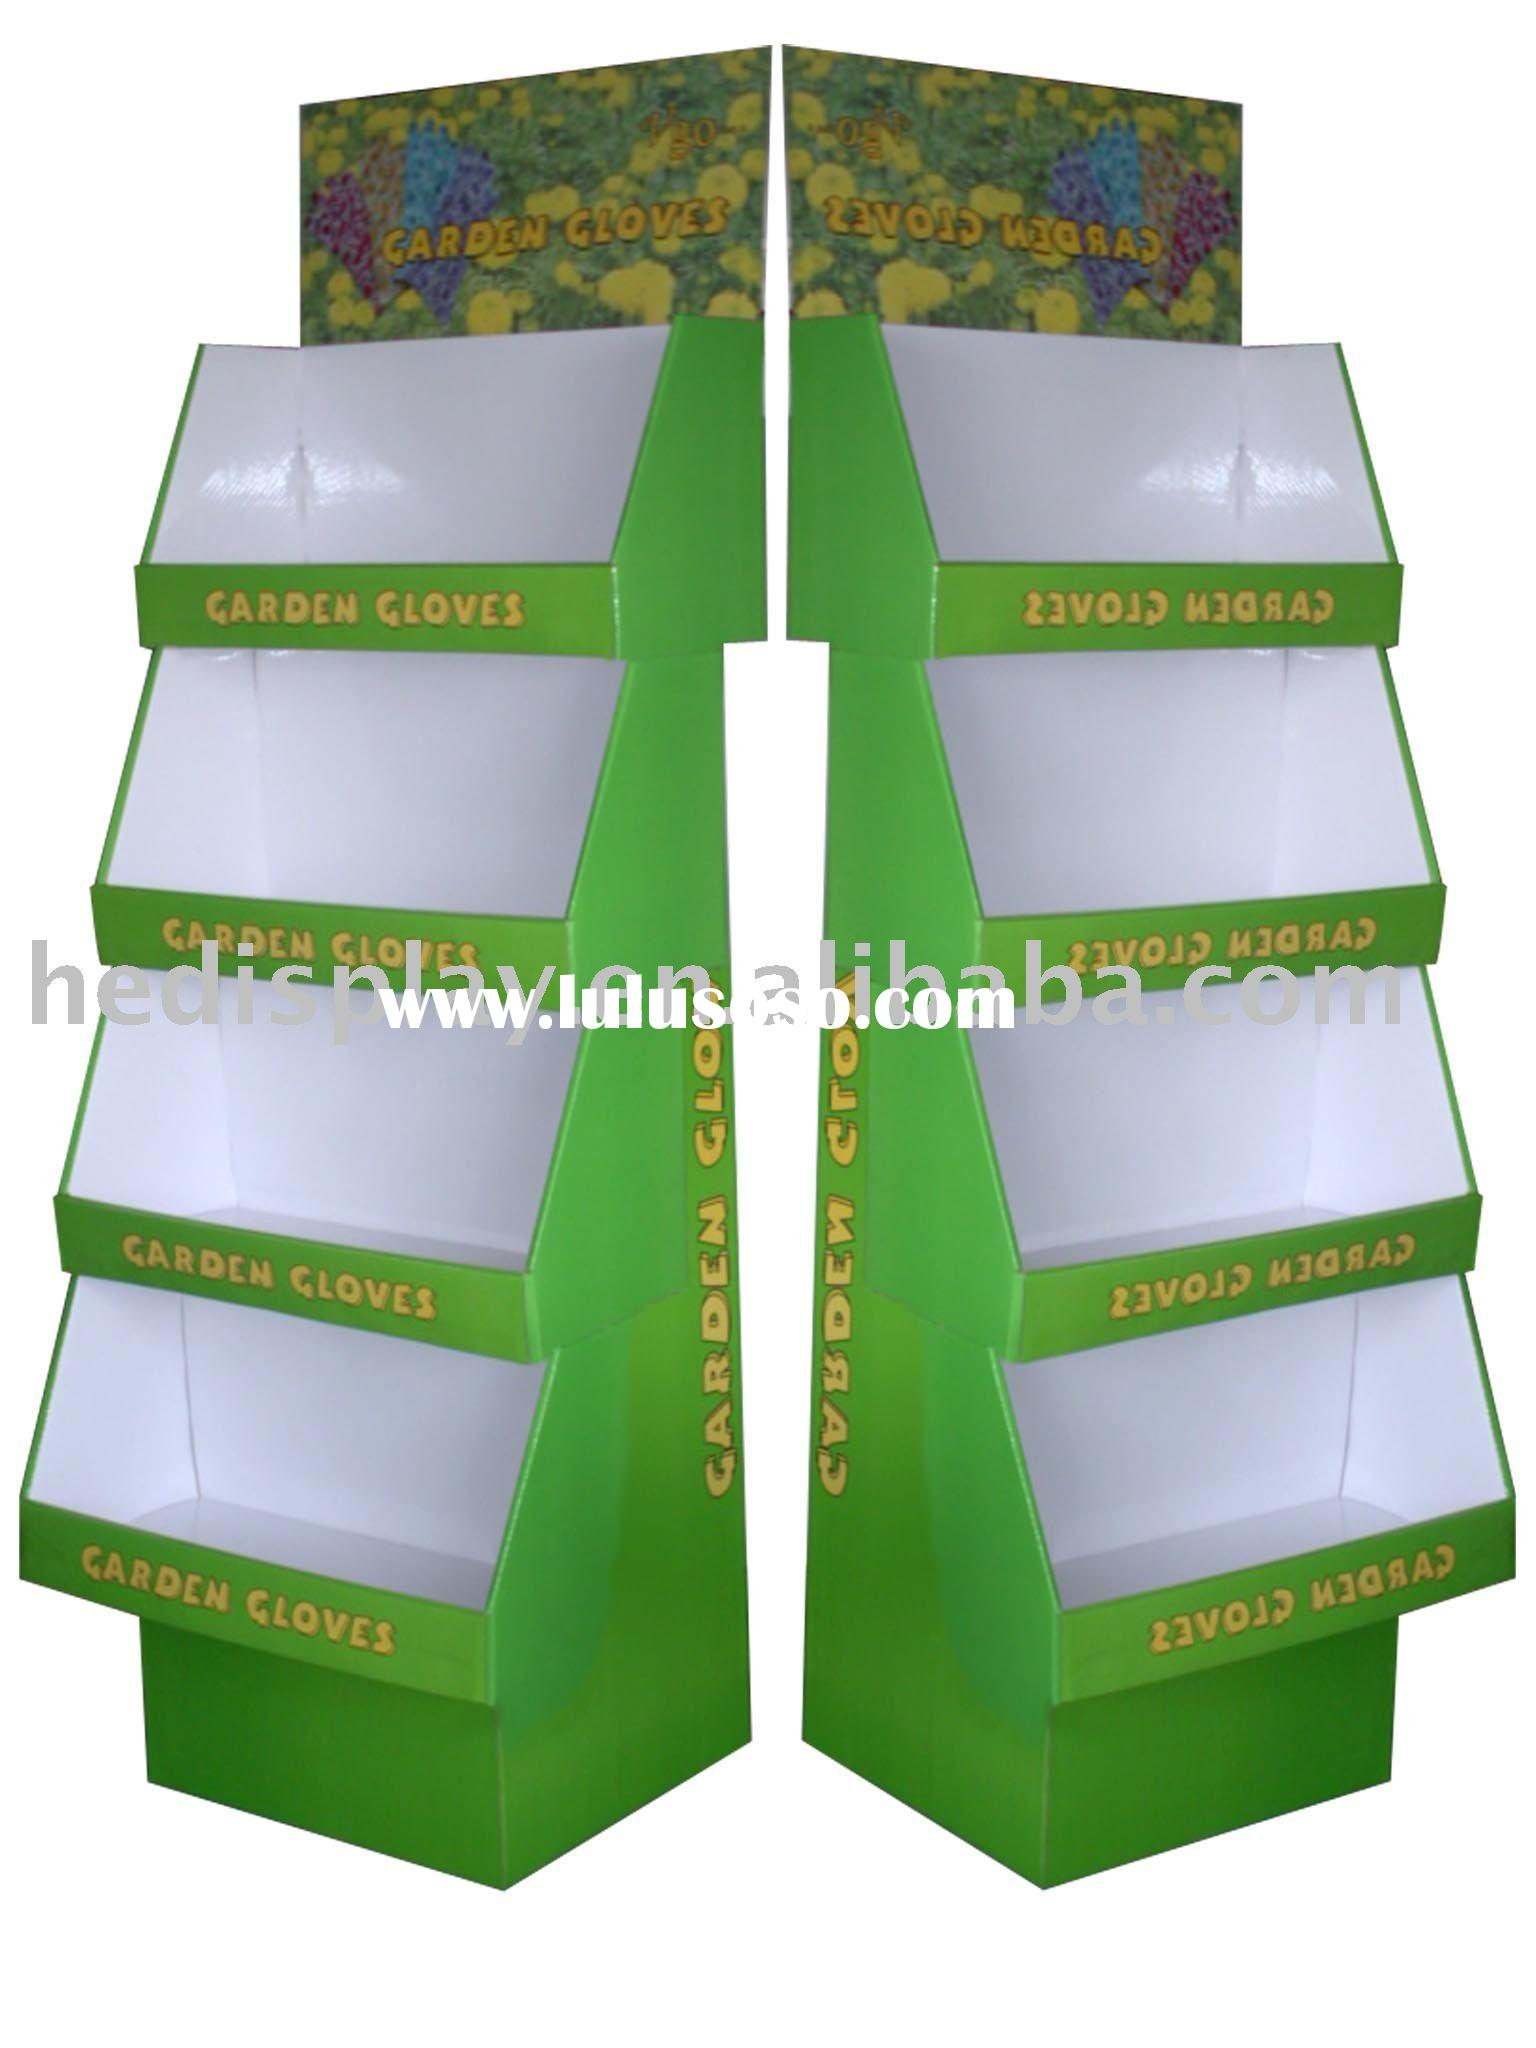 corrugated floor display stand with 4 trays